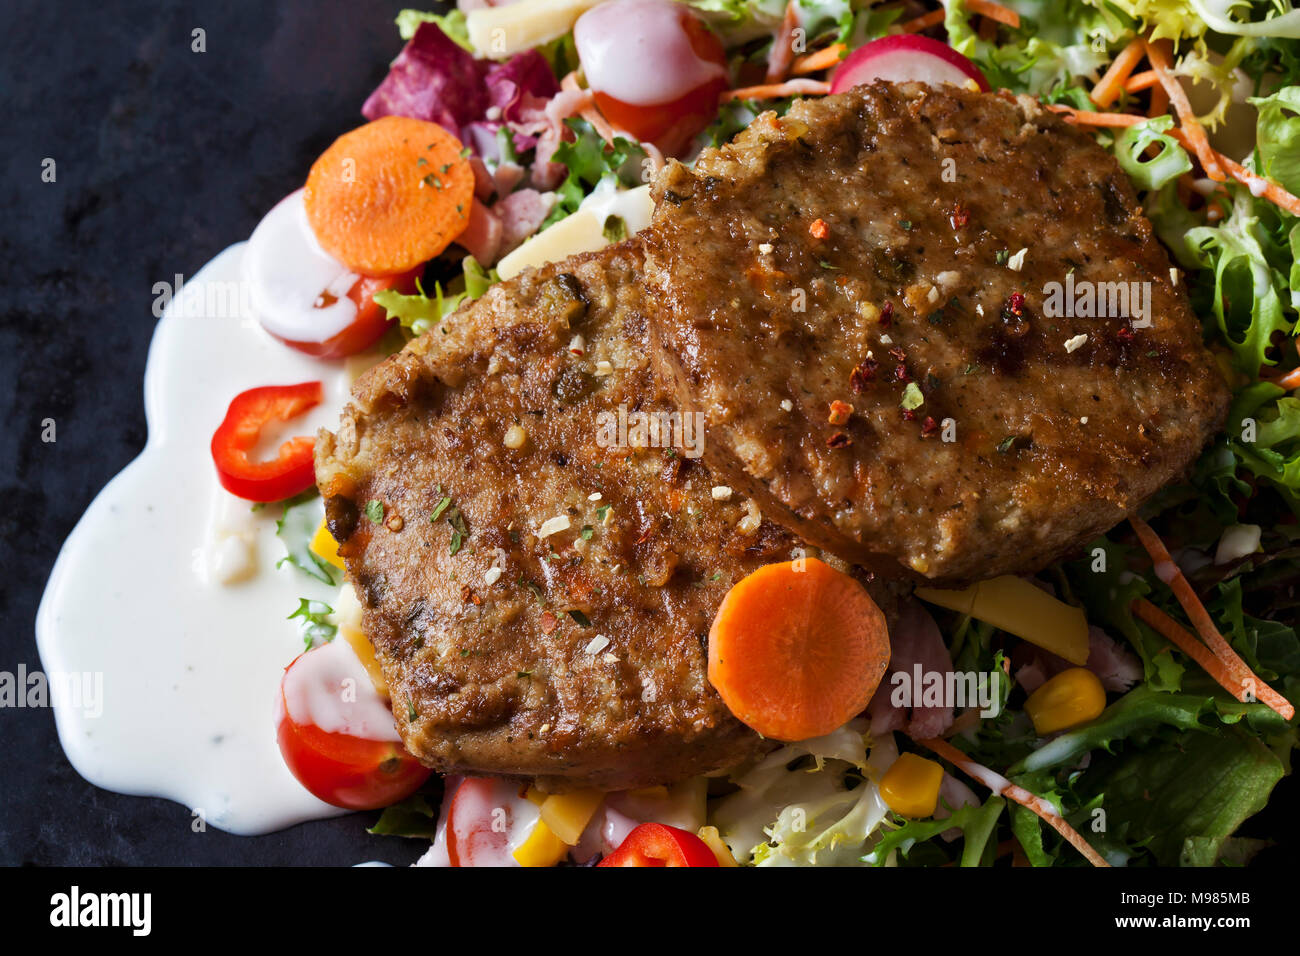 Veggie burger with lettuce, vegetables and yoghurt sauce - Stock Image